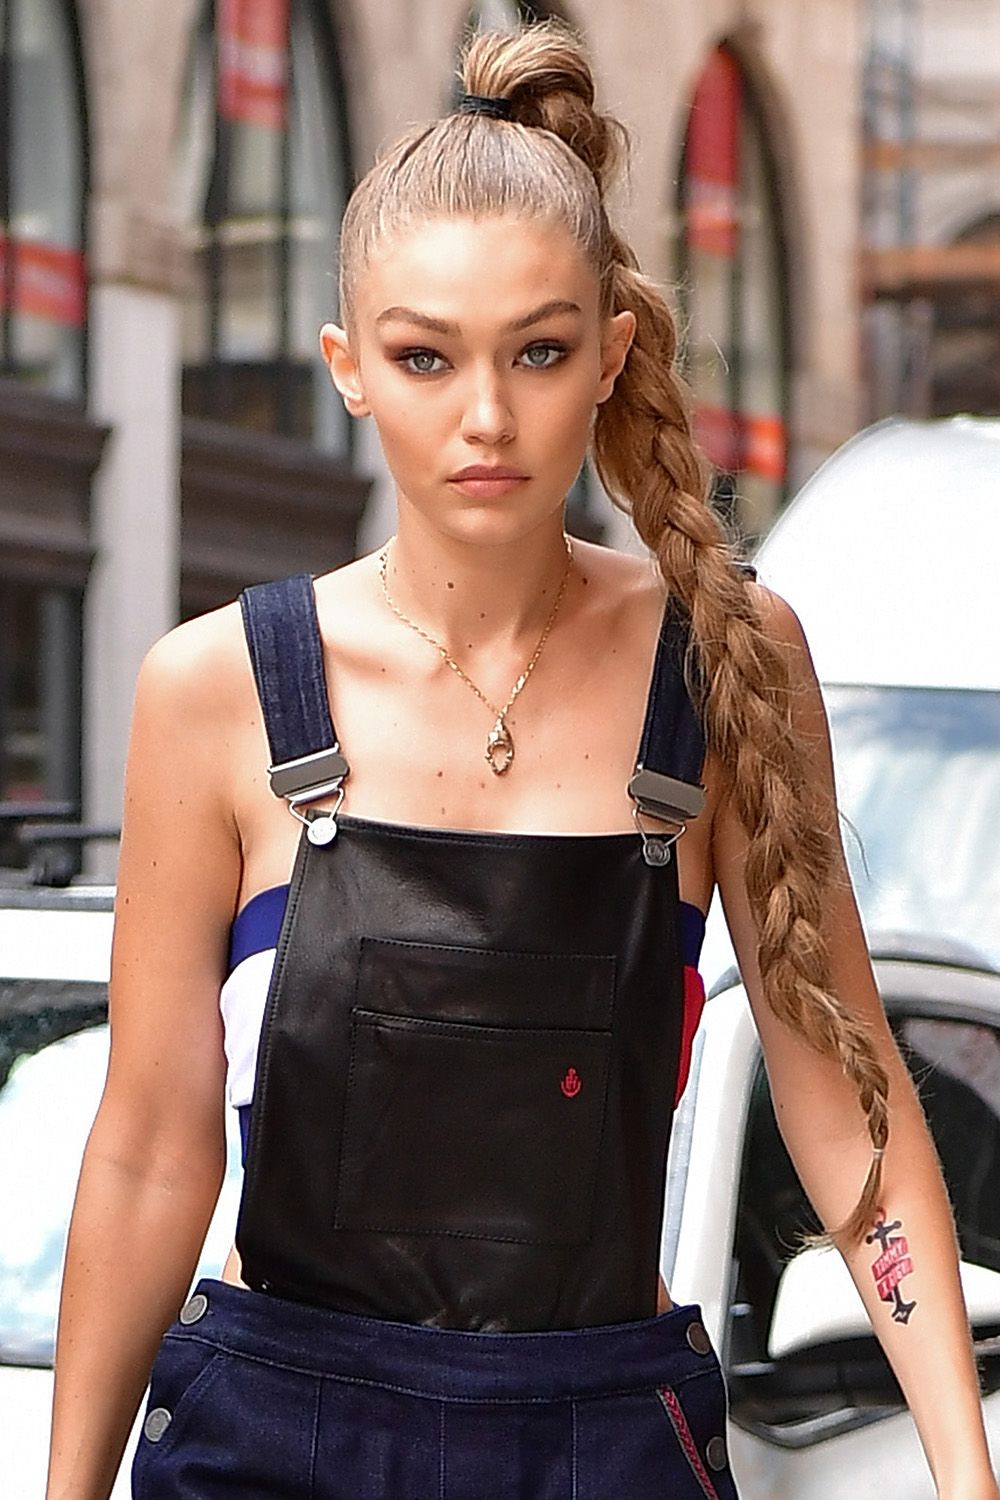 The behind secret gigi hadids short hairstyle forecast dress for everyday in 2019